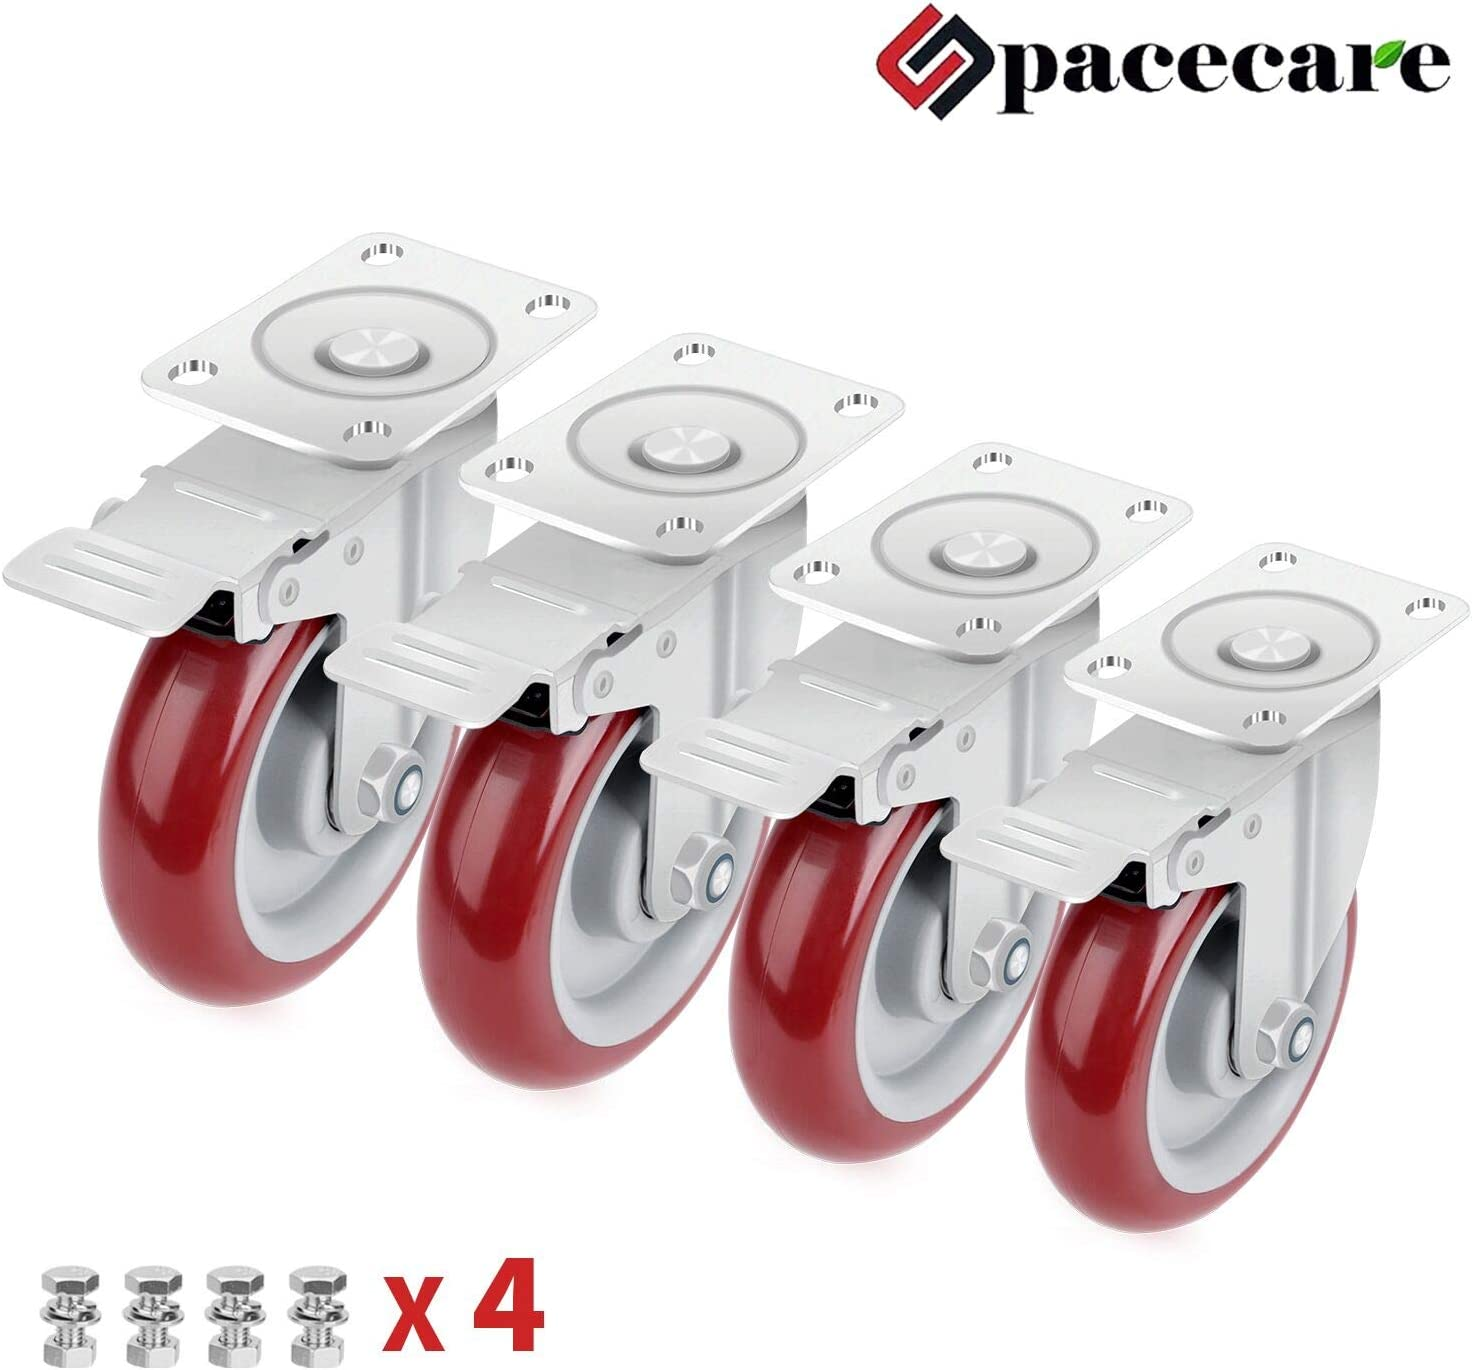 SPACECARE 4 Pack 3 Inch Swivel Red Casters Wheels 1200Lbs Heavy Duty Polyurethane Wheels with Brake Safety Dual Locking No Noise Wheels Anti-wear Smooth Casters